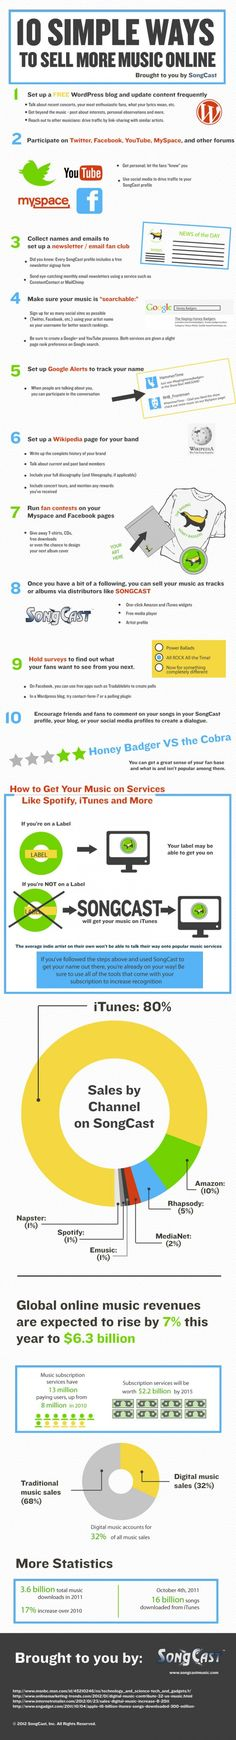 This infographic is a representation of proven music promotion techniques that help musicians and bands to sell music online.